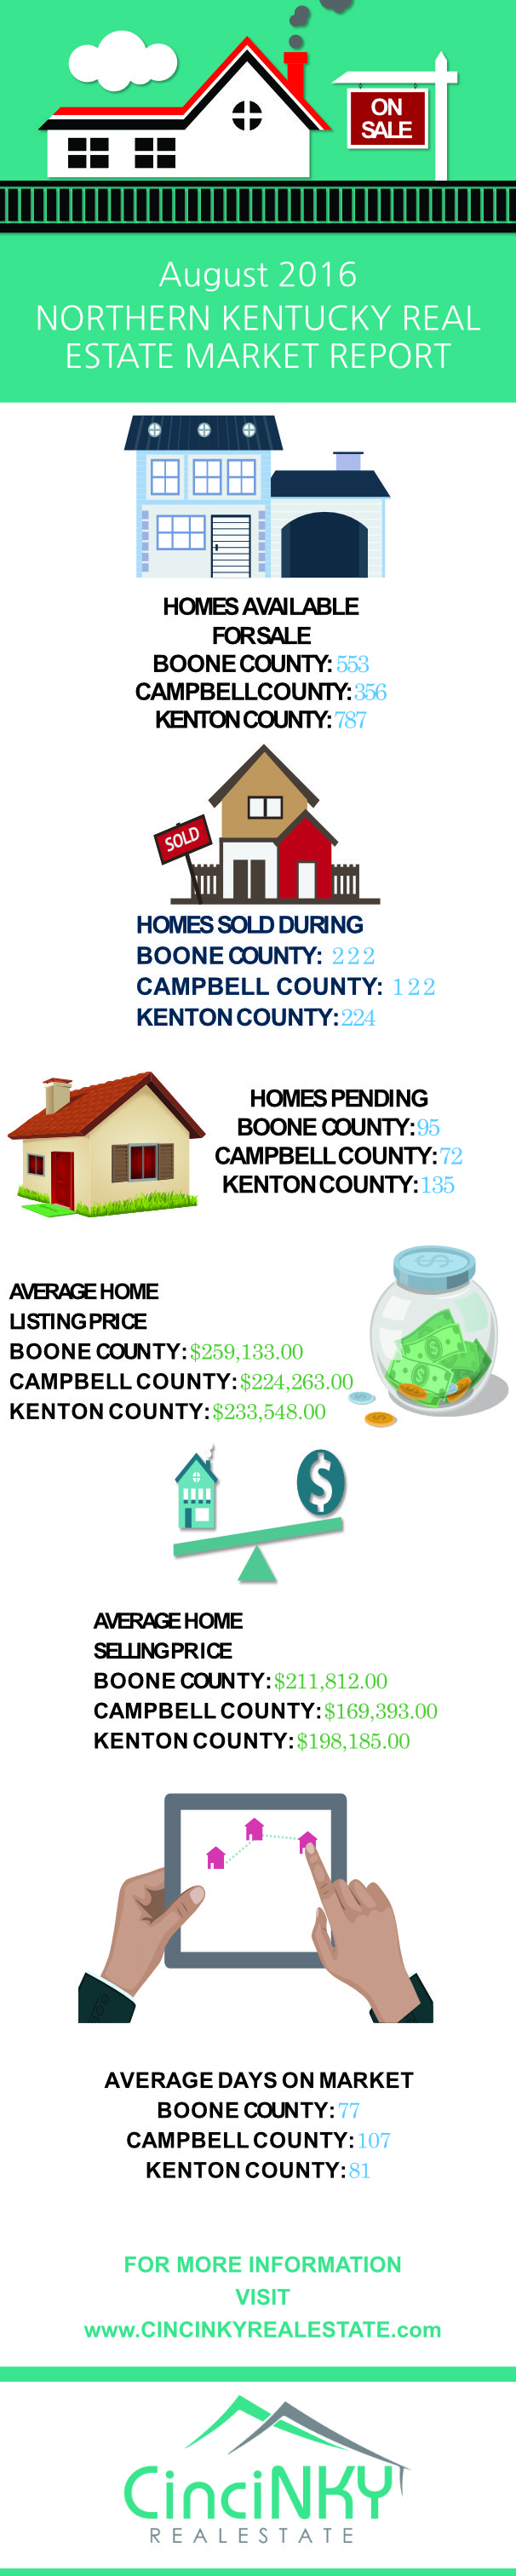 august 2016 northern kentucky real estate market report infographic